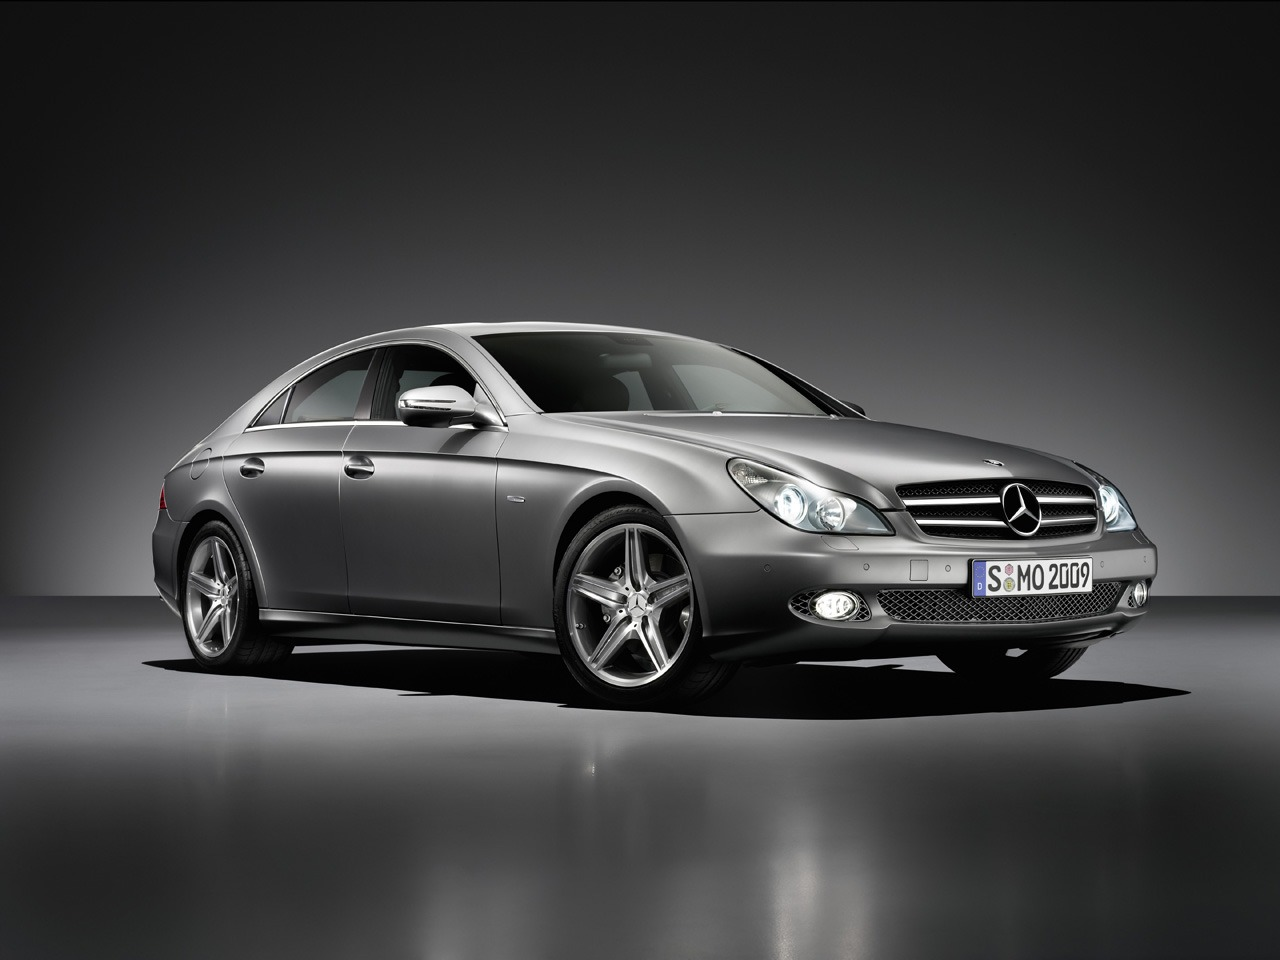 2009 mercedes benz cls class image 12 for Mercedes benz cls 2009